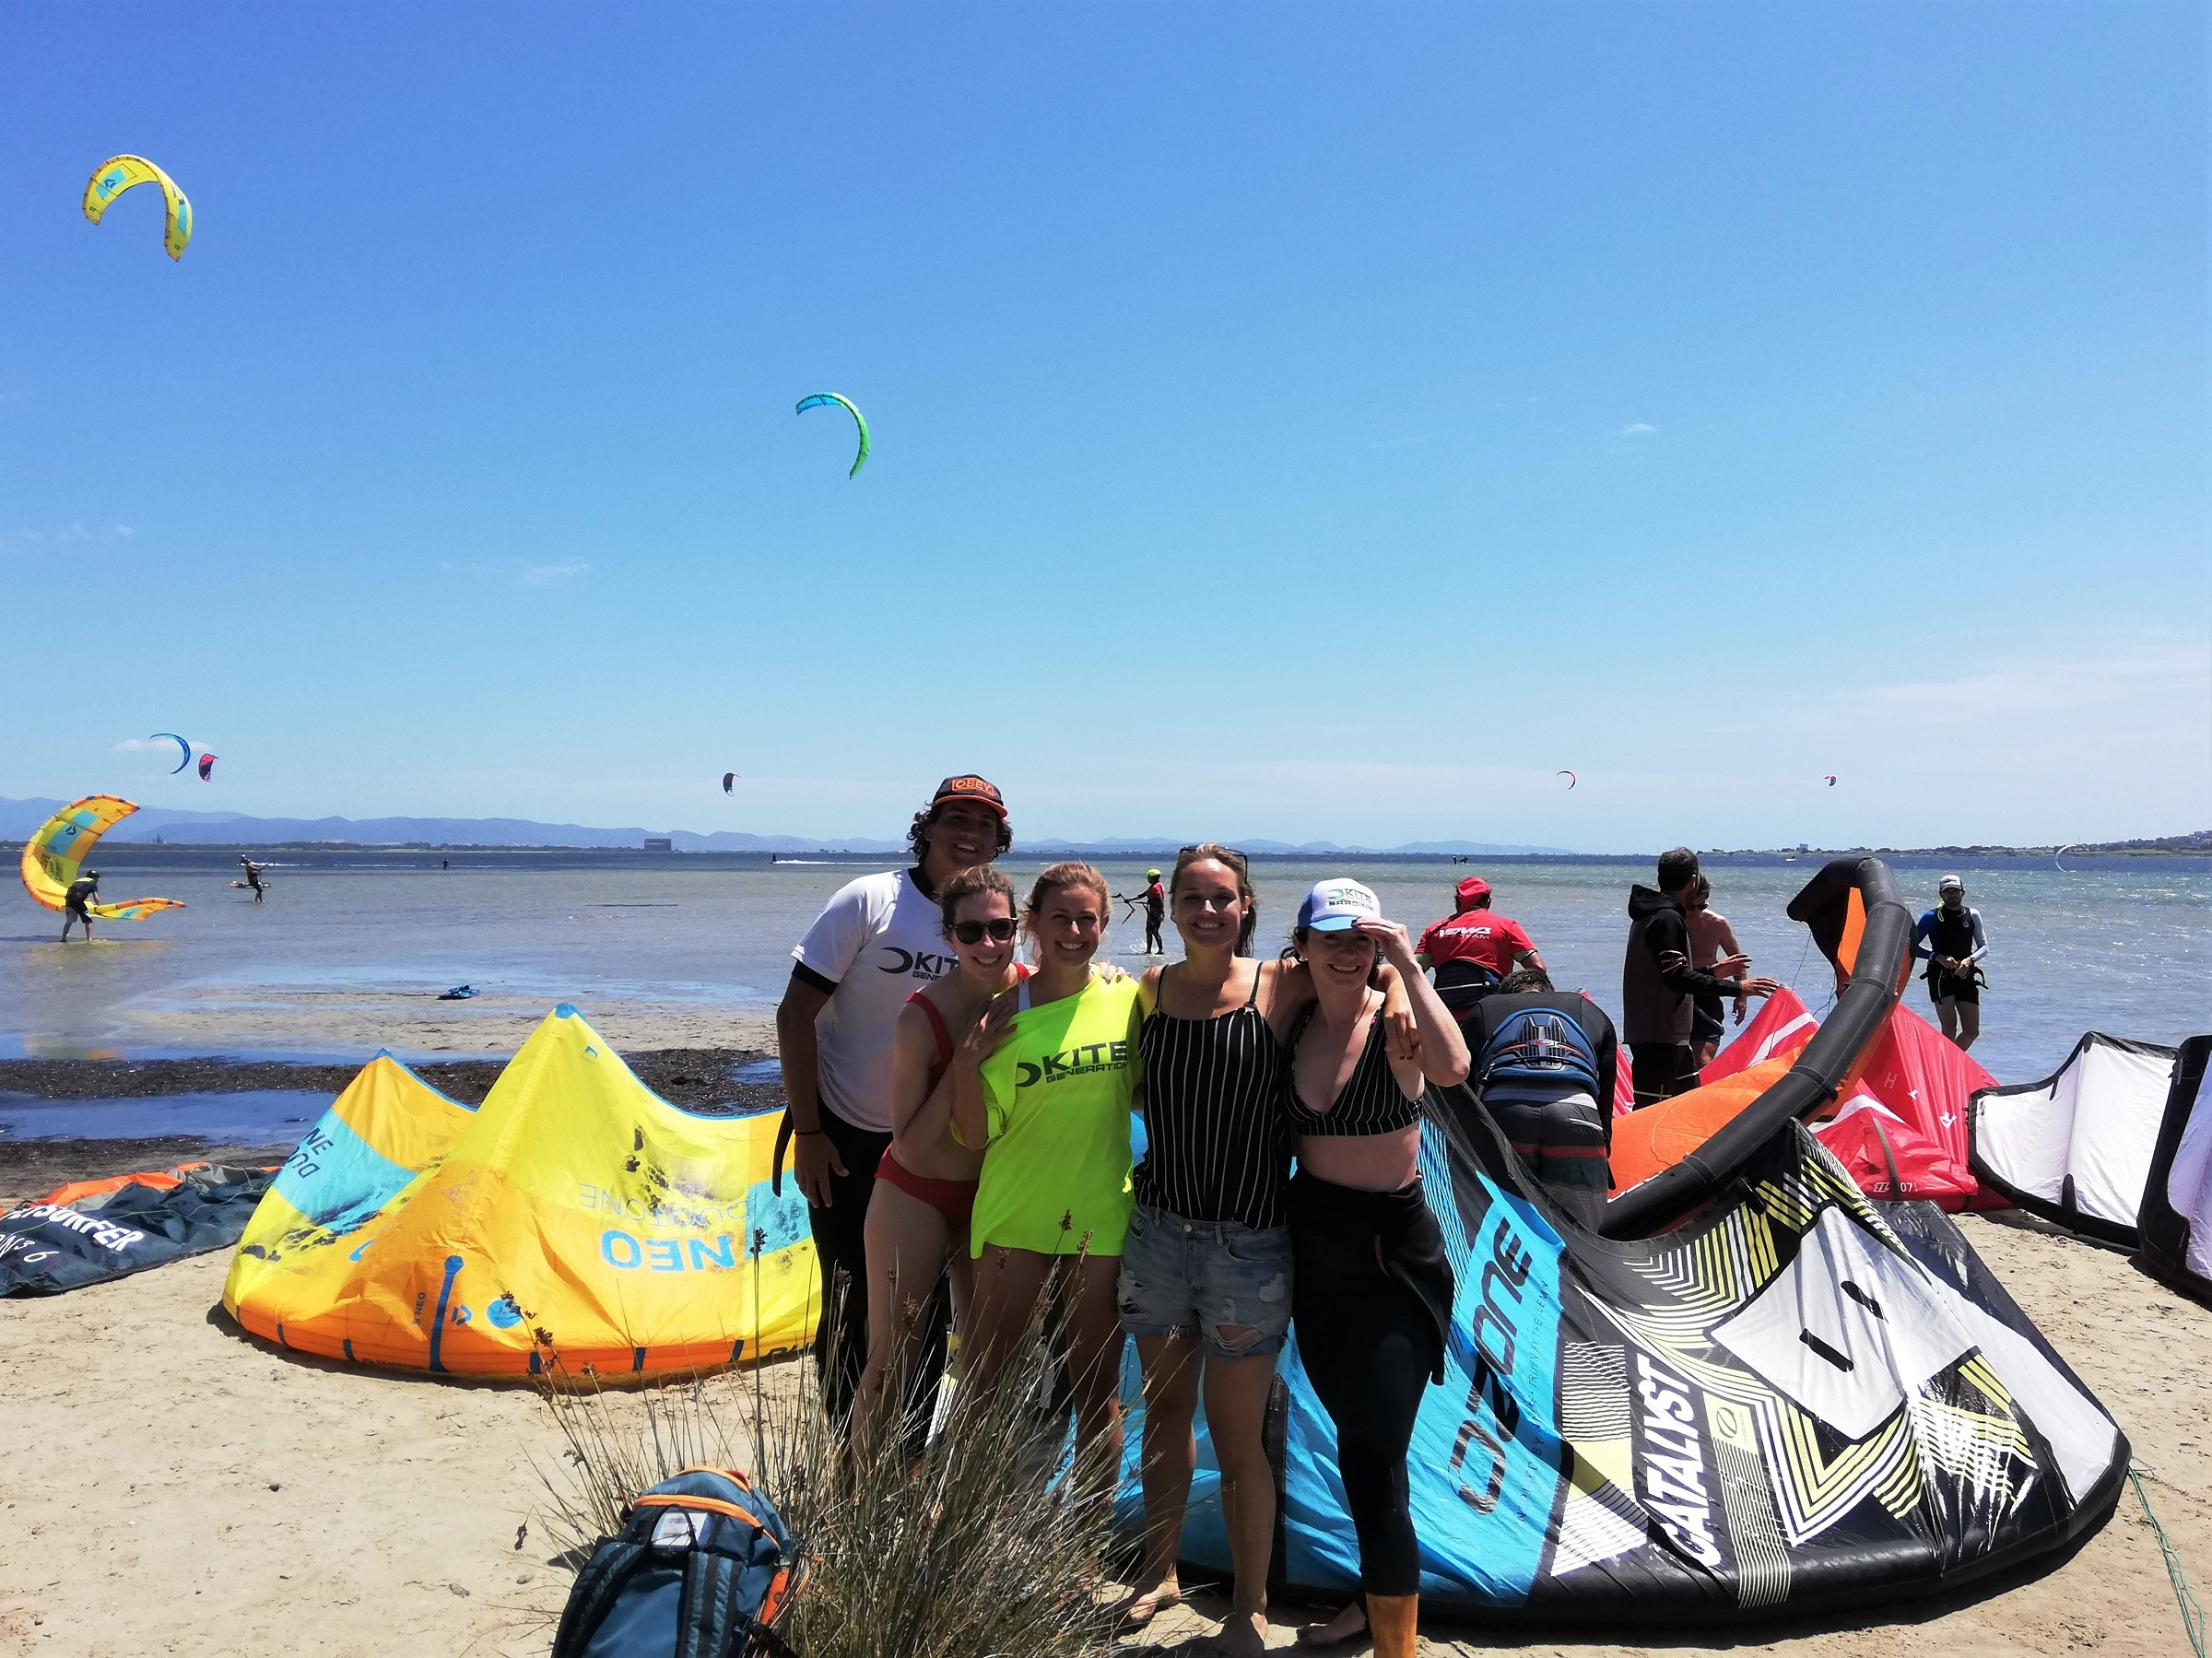 Kite Friends in Punta Trettu Sardinia, the best kite Spot in Europe with Flat and Shallow Water